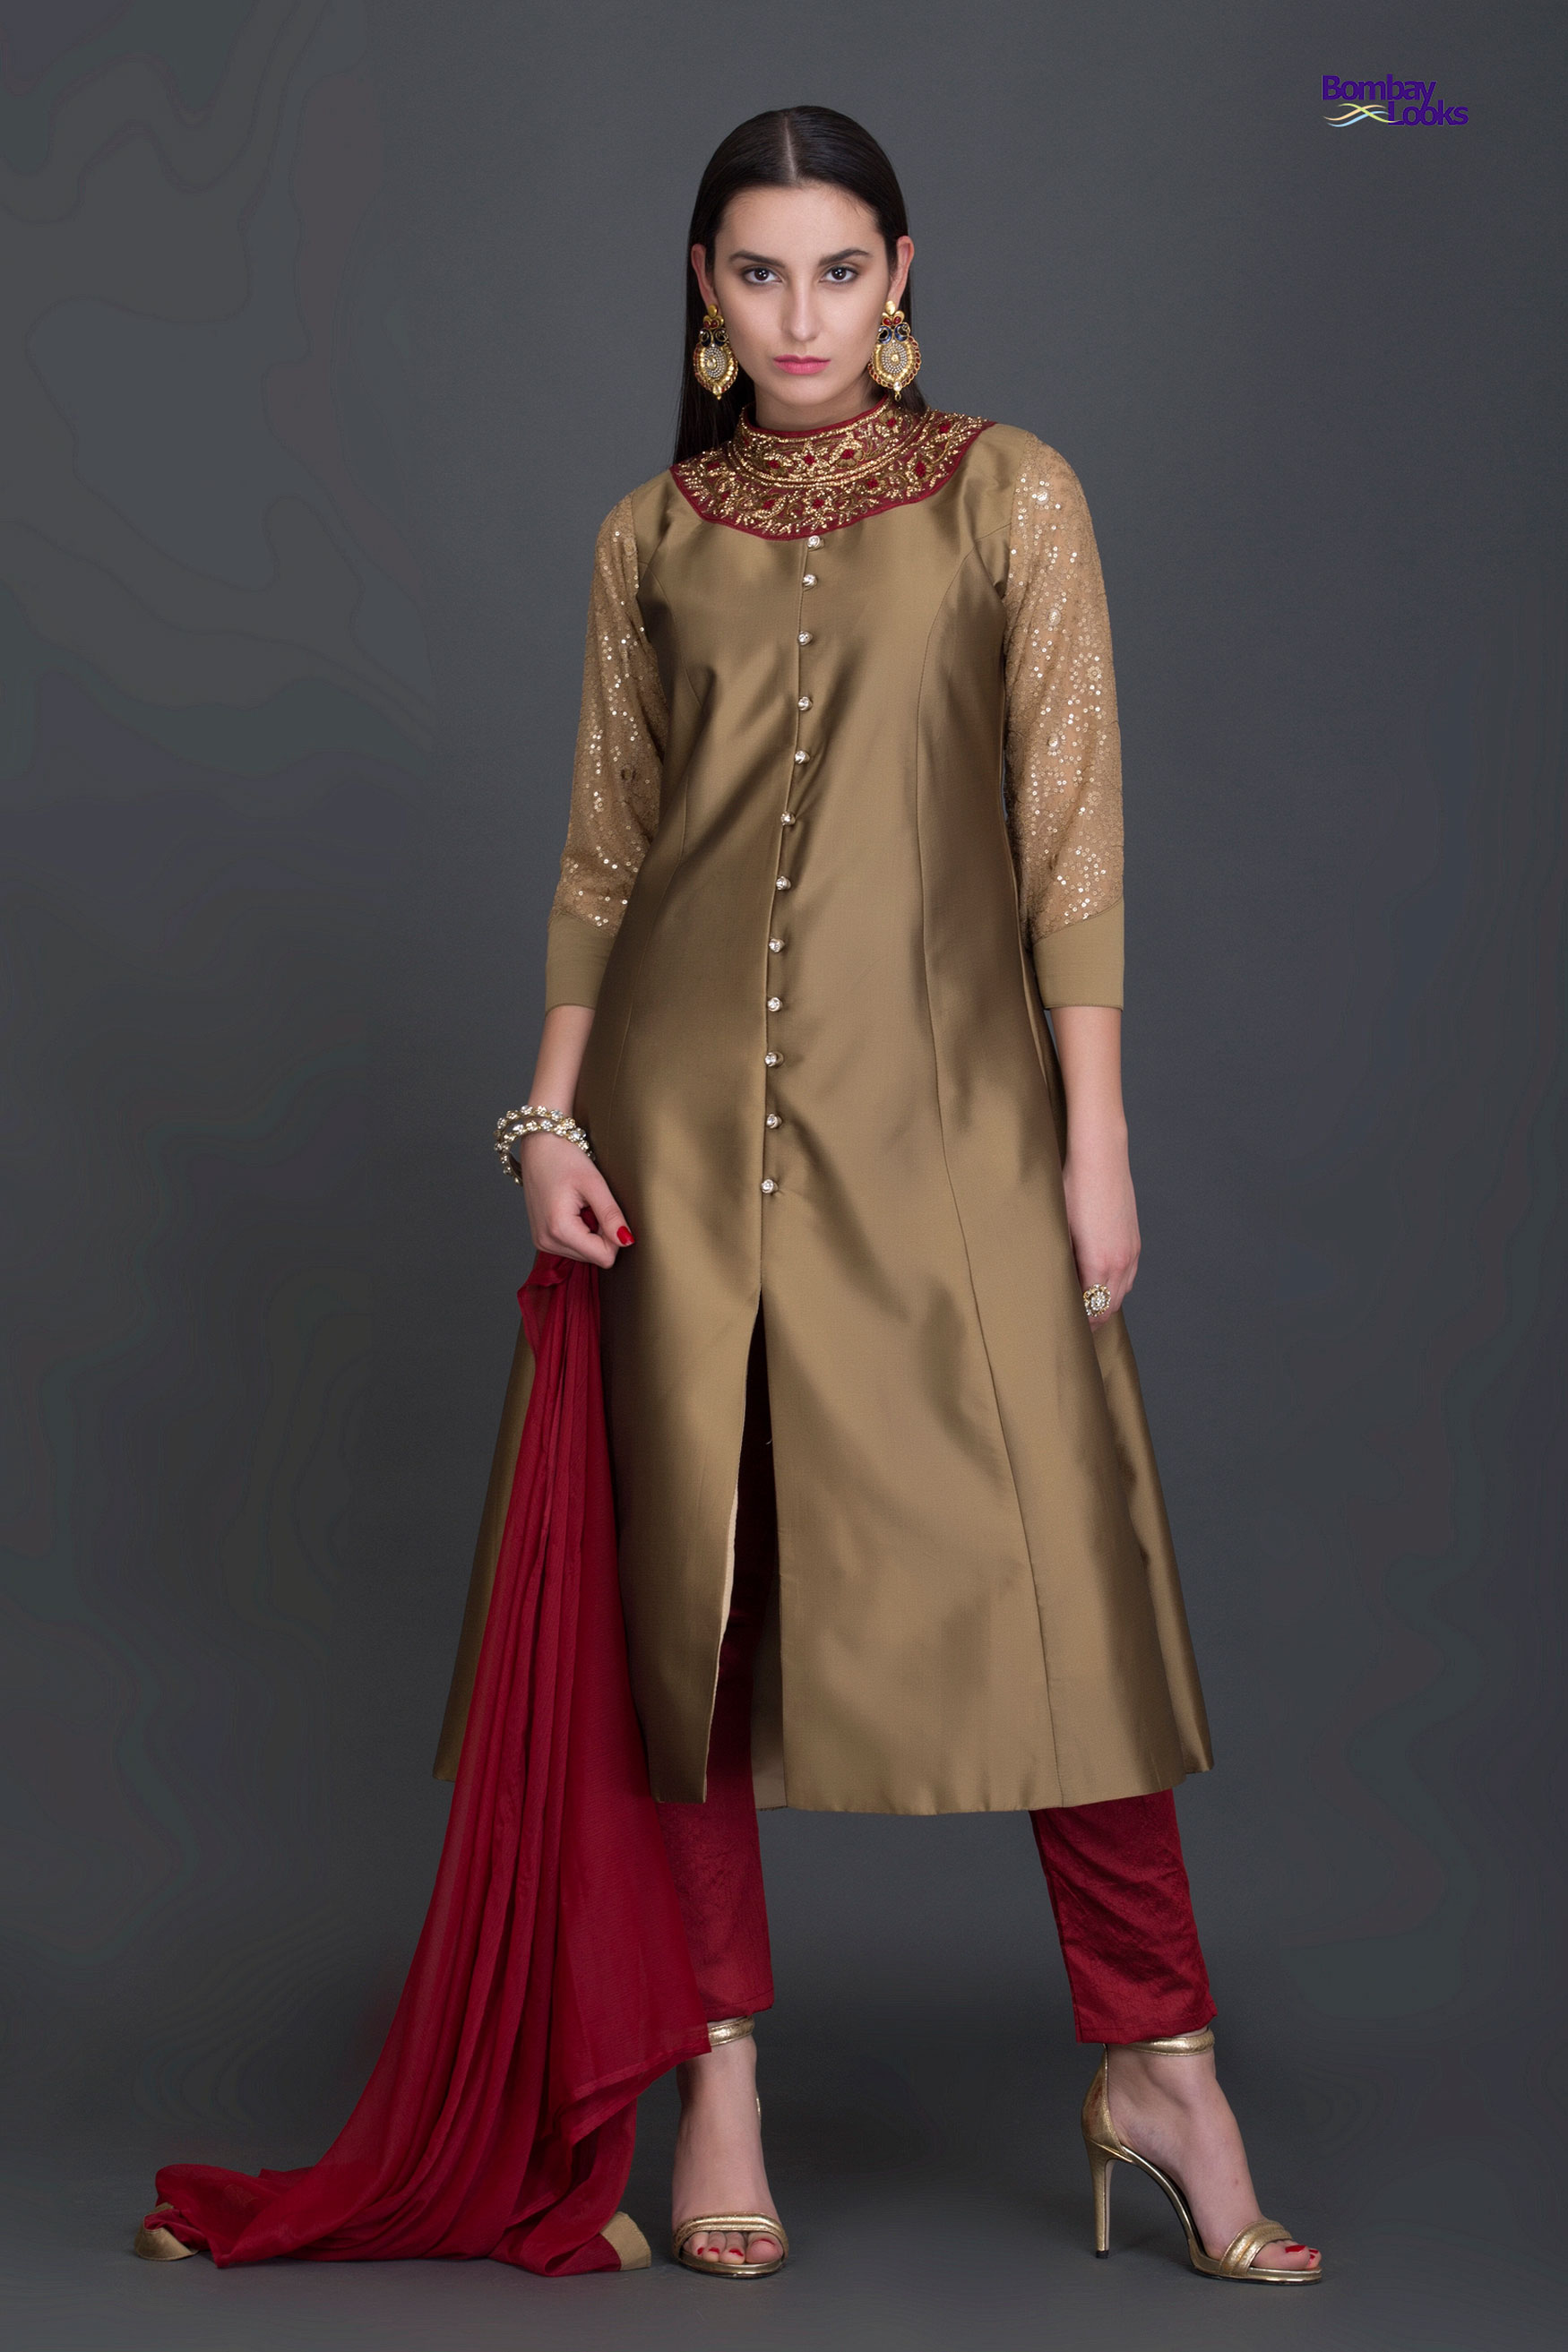 Royal kalidaar suit with royal tones and golden embroidery